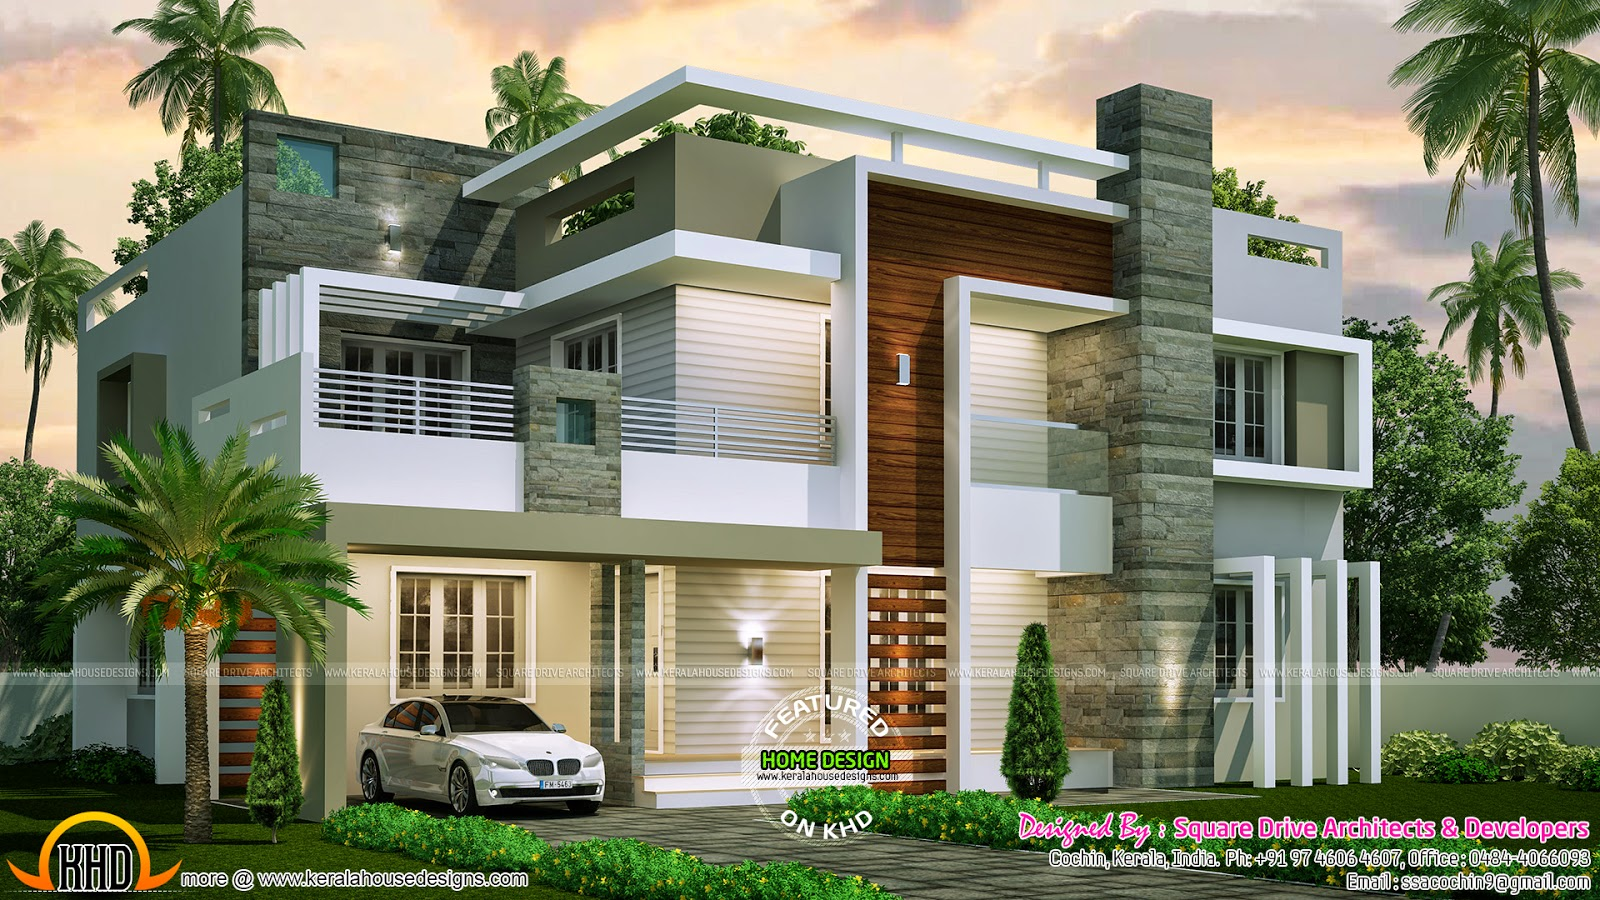 4 bedroom contemporary home design kerala home design for Contemporary architecture houses